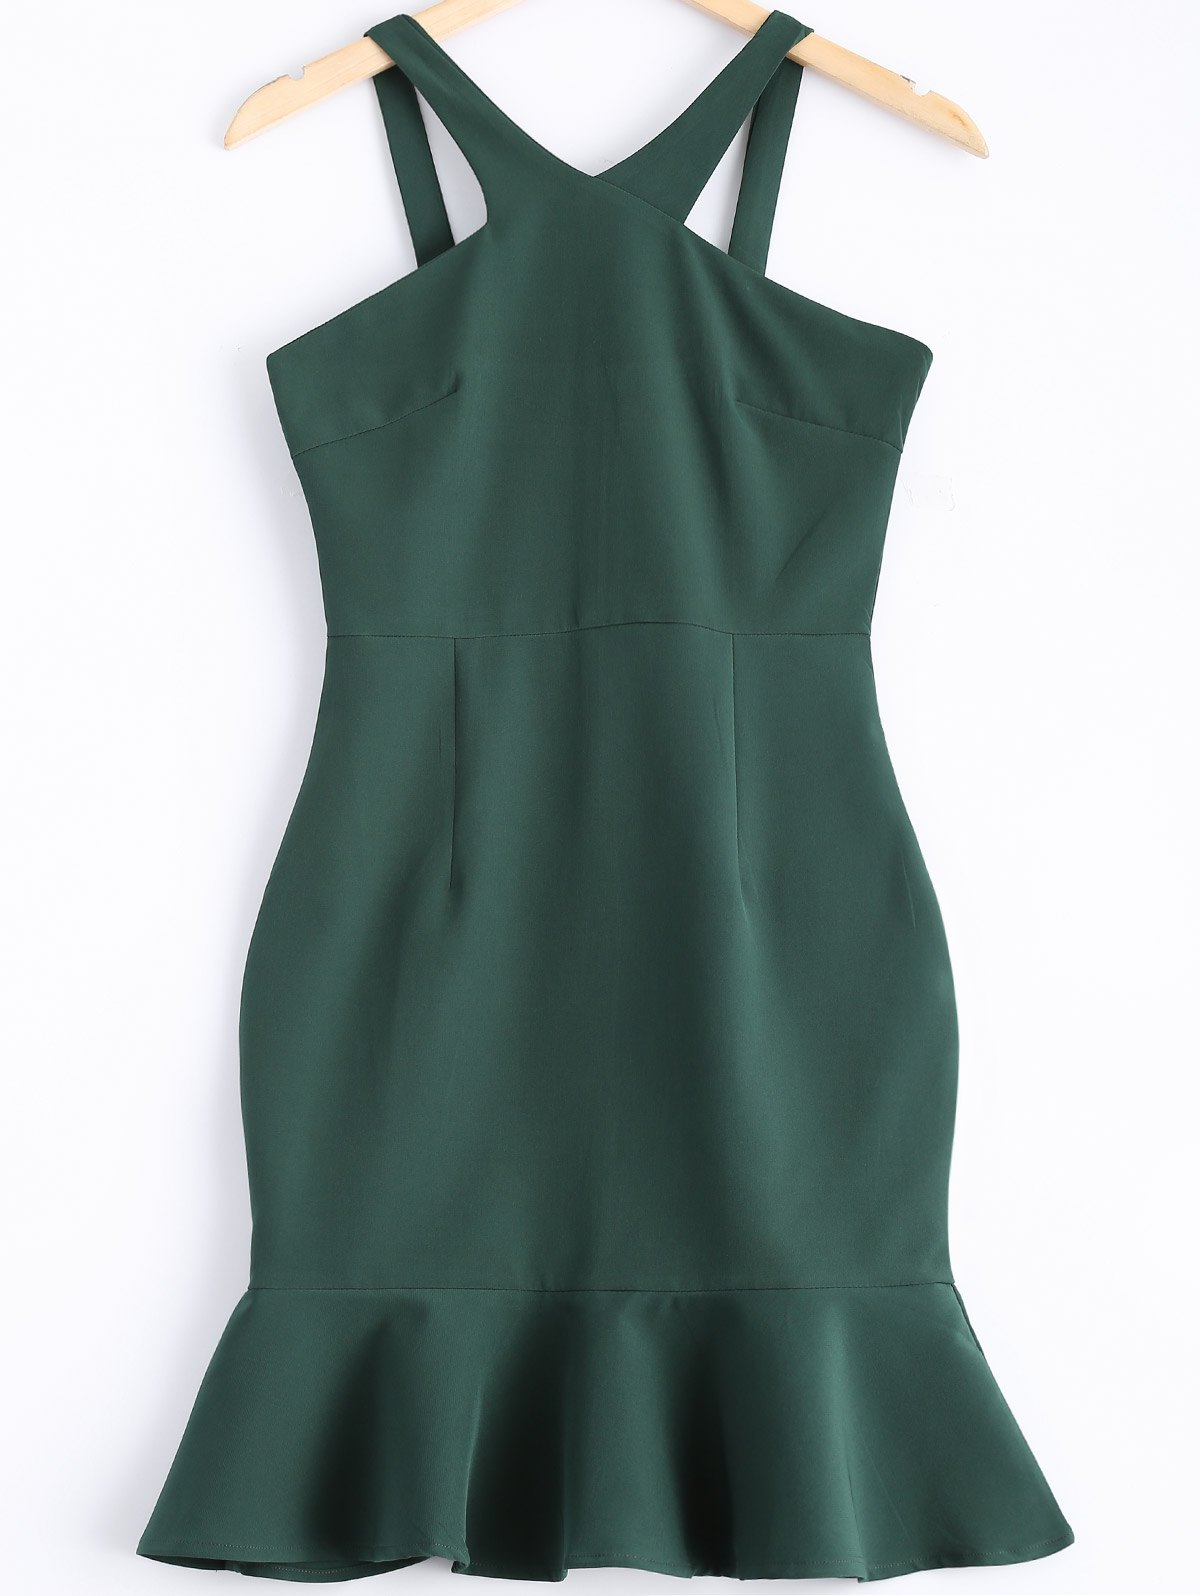 Sophisticated Women's V-Neck Flounce Dress - BLACKISH GREEN M